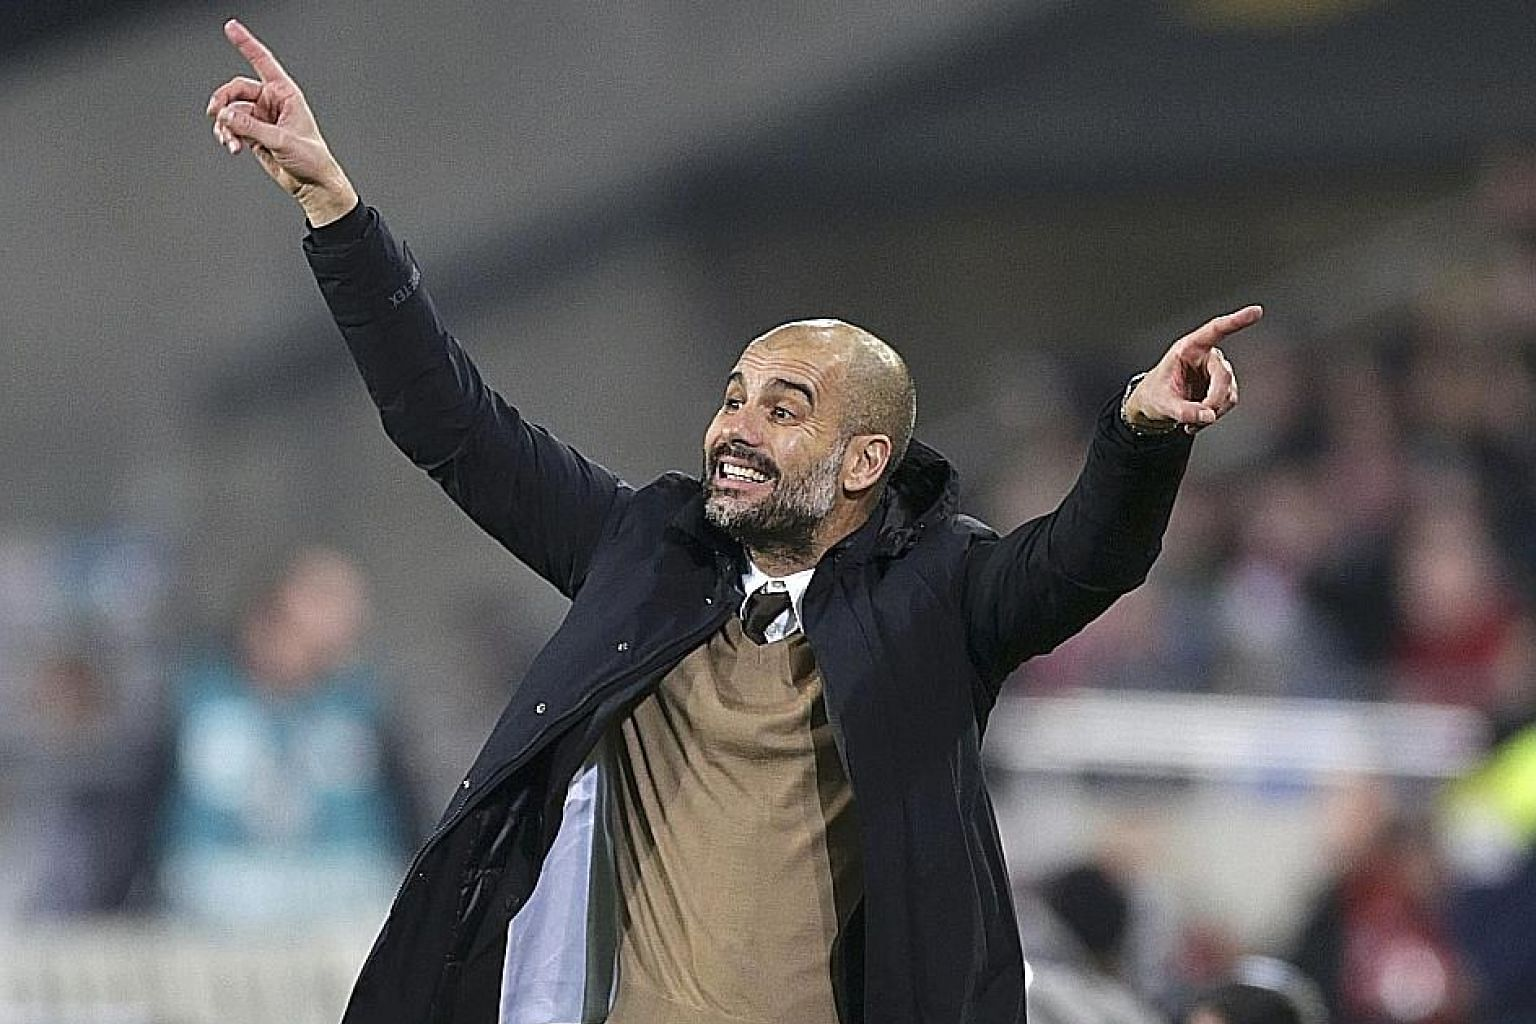 Pep Guardiola is expected to liaise closely with City's director of football, Txiki Begiristain, who is a close friend. But Stoke City manager Mark Hughes says Guardiola will need to adapt to the EPL.